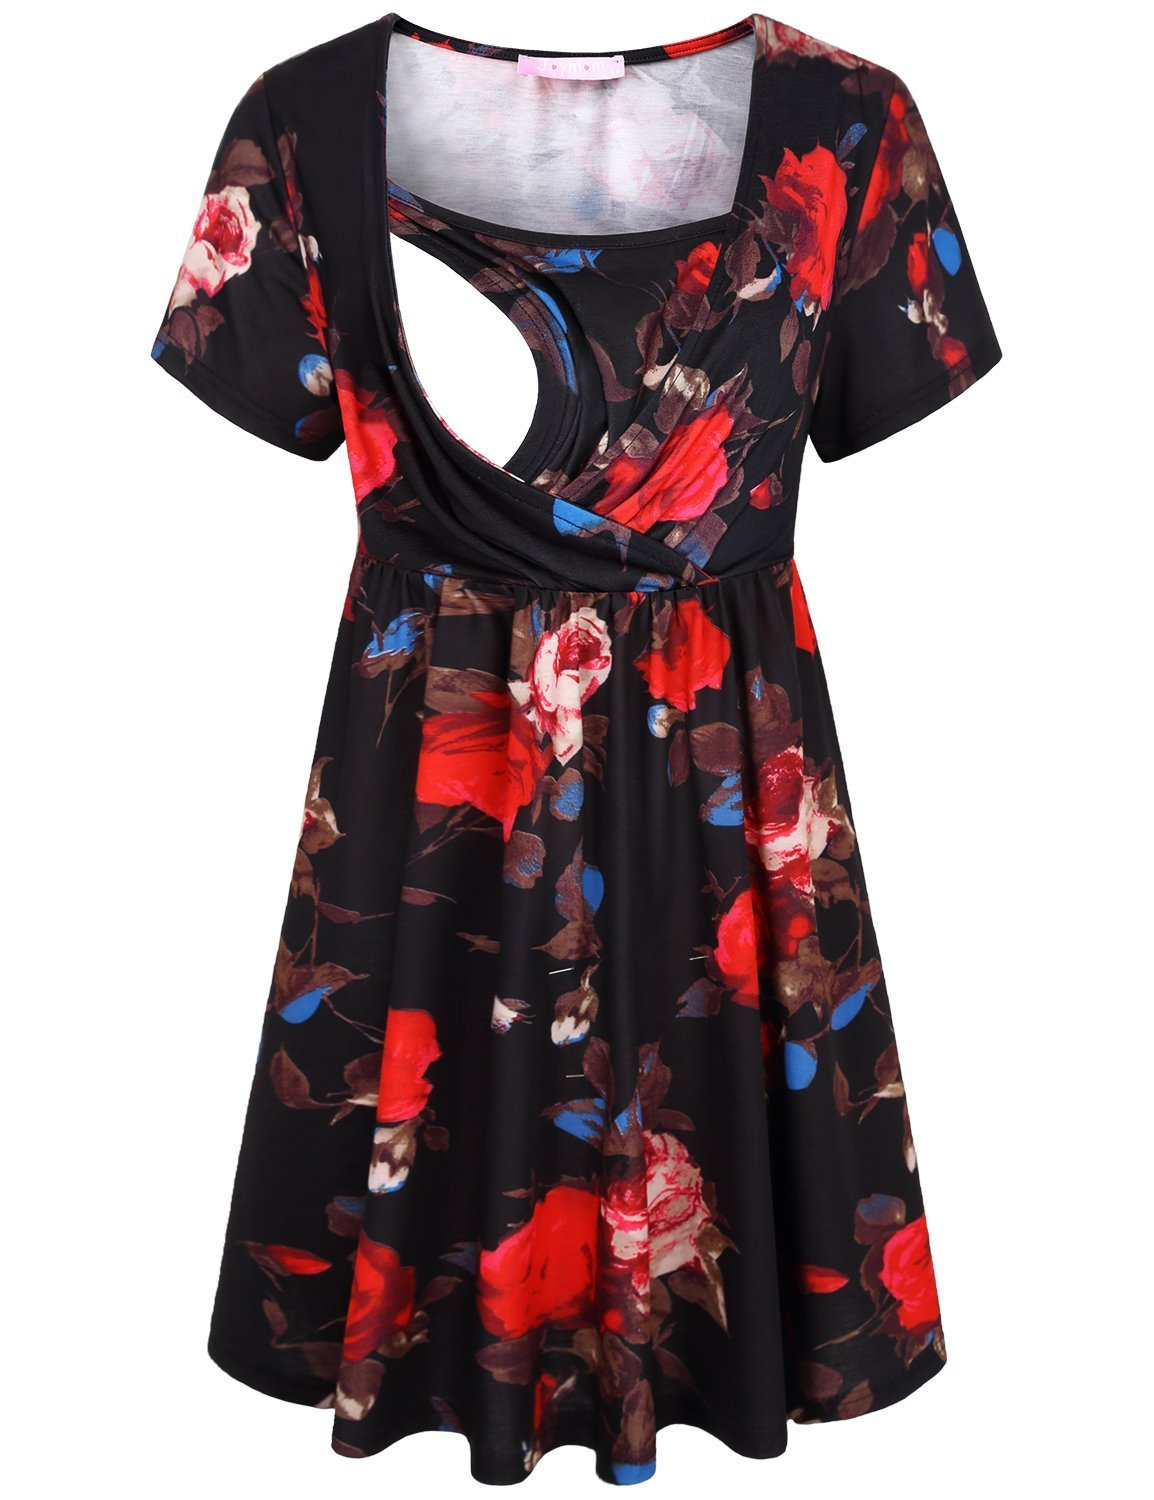 JOYMOM Nursing Pajamas, Pregnant Printed Stretchy Fit and Flare Dresses Summer Maternity Surplice Dress with Sleeves Function Floral Dlivery Gown Black Red Flower Medium